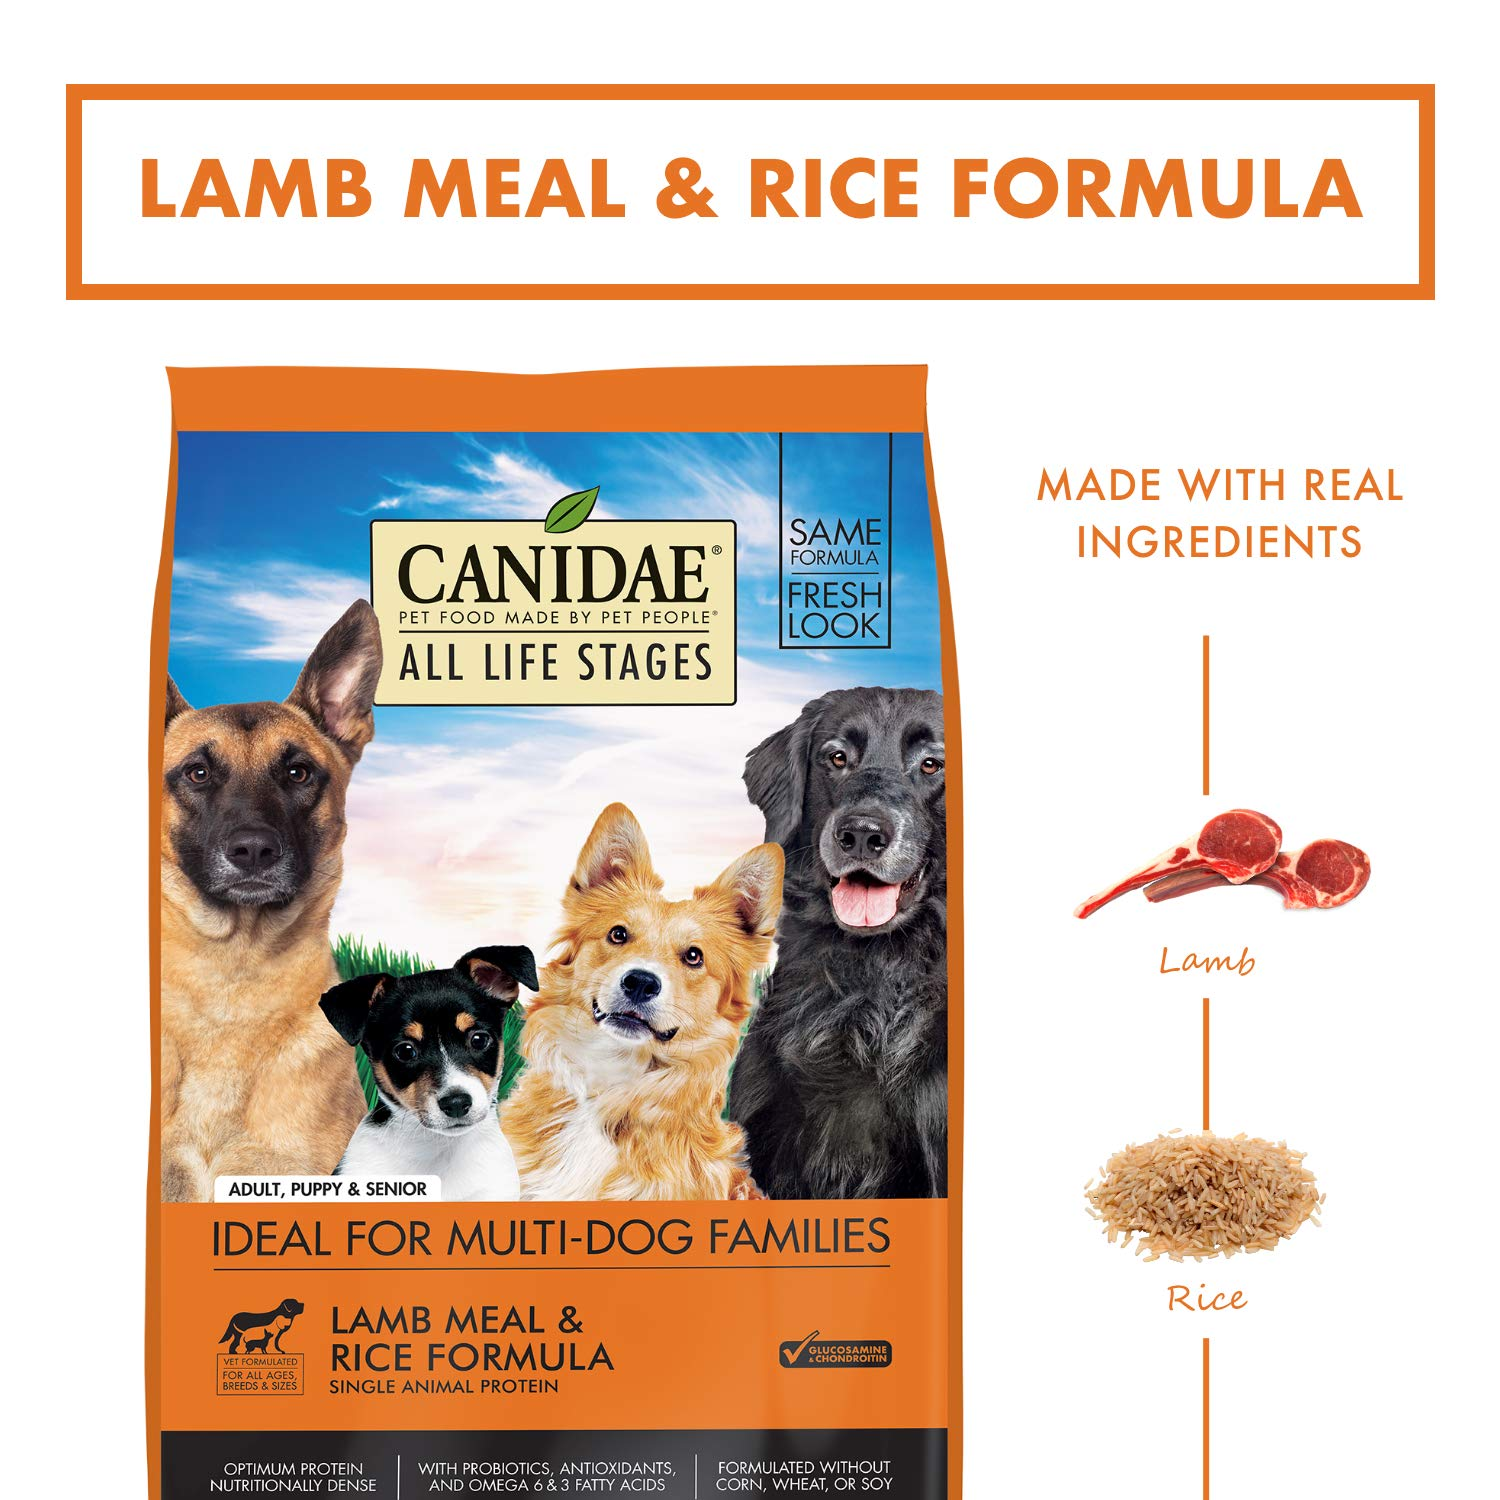 5. CANIDAE All Life Stages Lamb Meal & Rice Formula Dry Dog Food